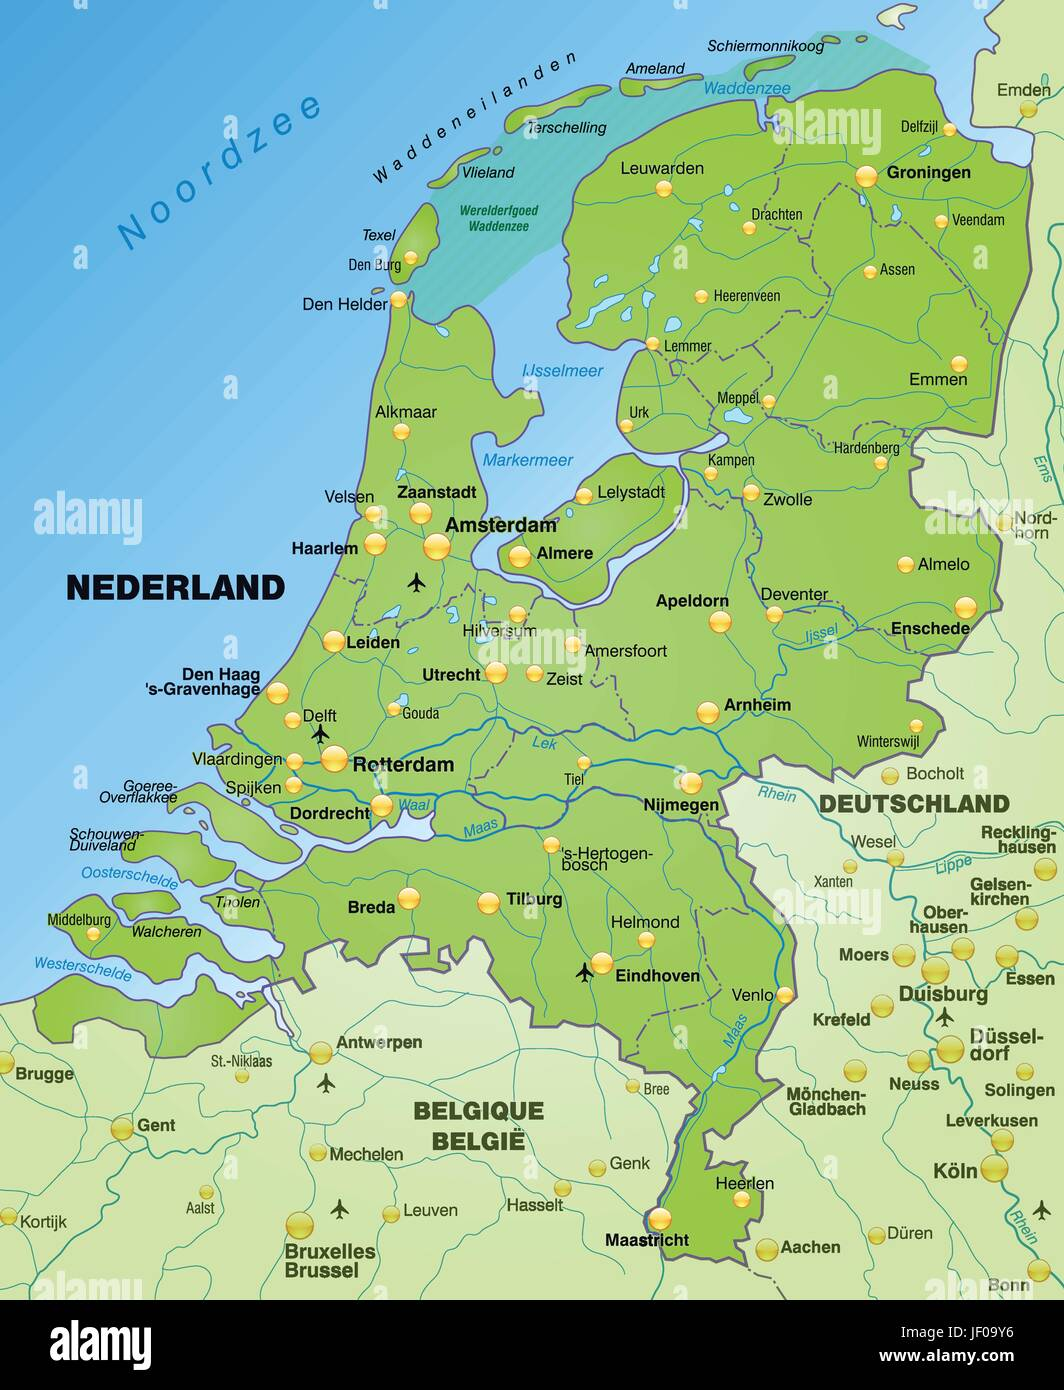 Card Atlas Map Of The World Map Netherlands Border Card Stock